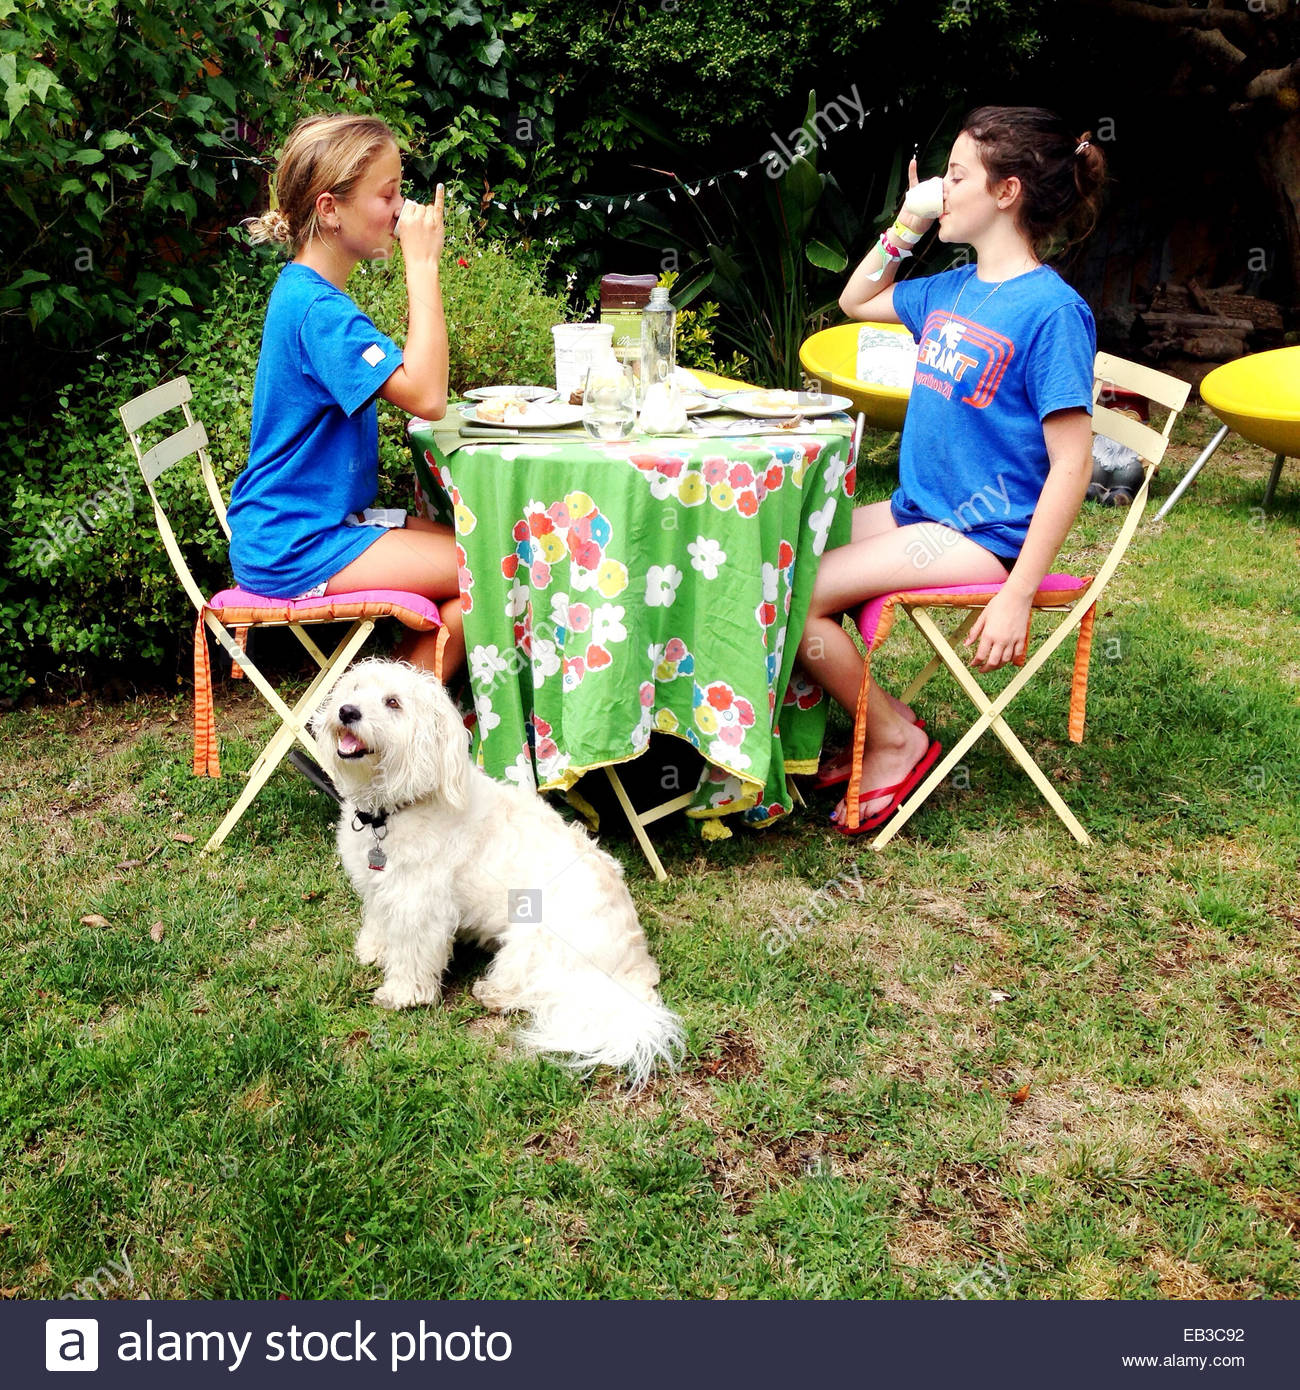 Two girls sitting in garden with pet dog having a tea party - Stock Image